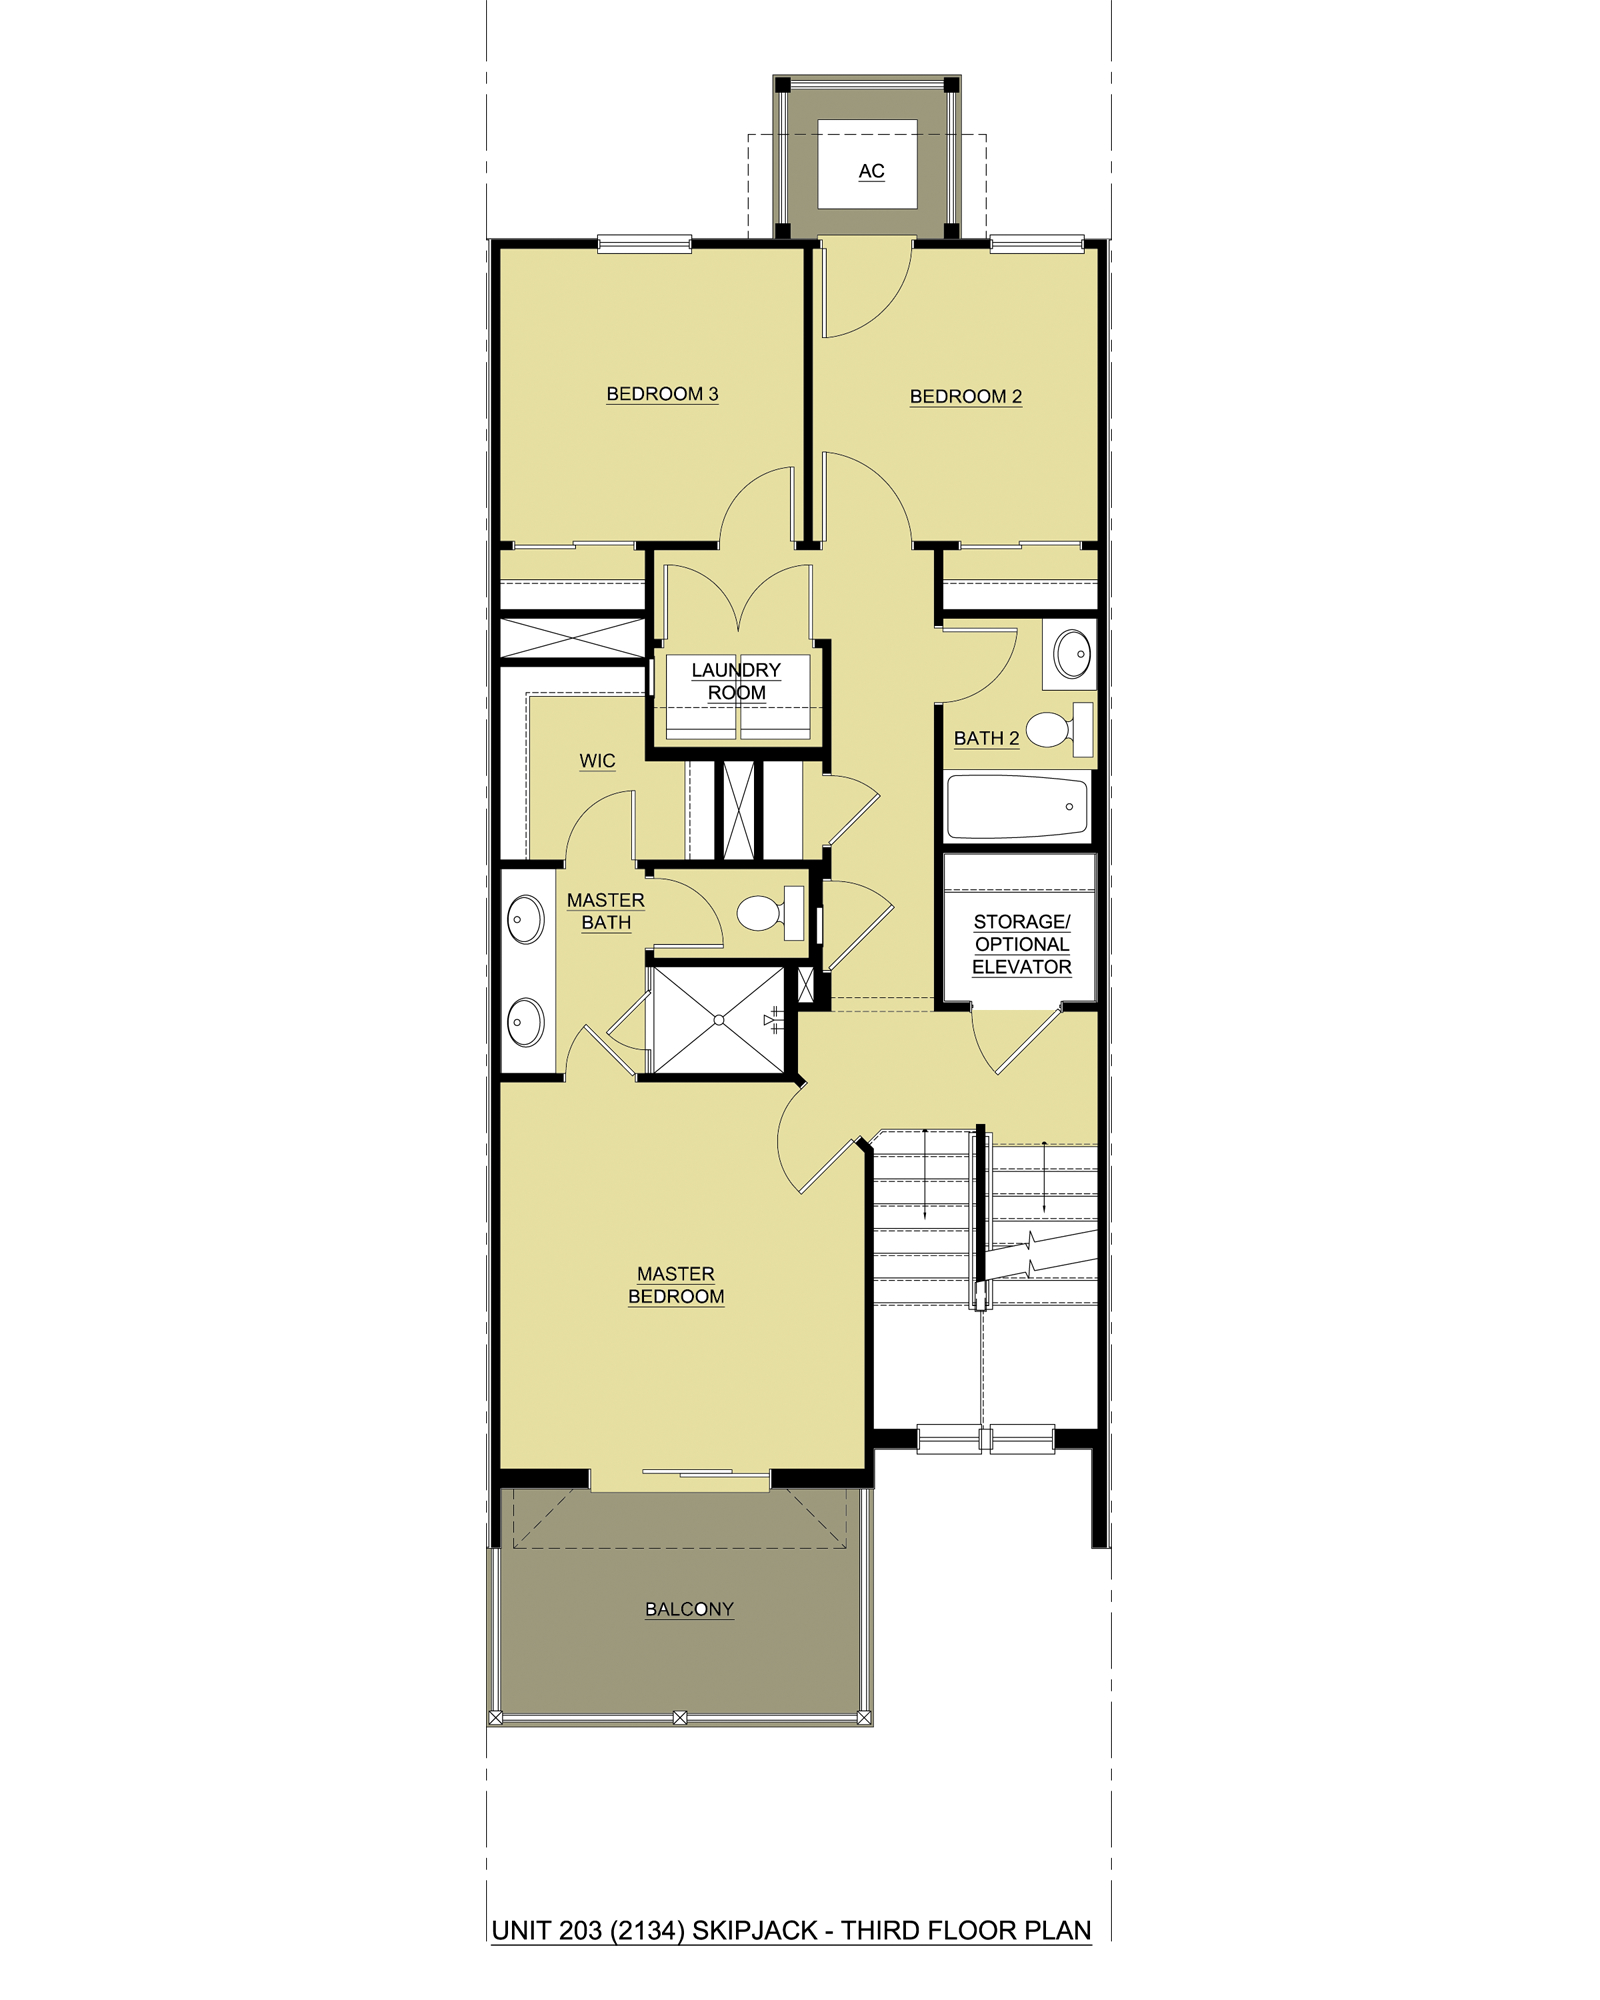 Ashton Woods Apartments: Skipjack W/ Loft New Home Plan For Waterside In Indian